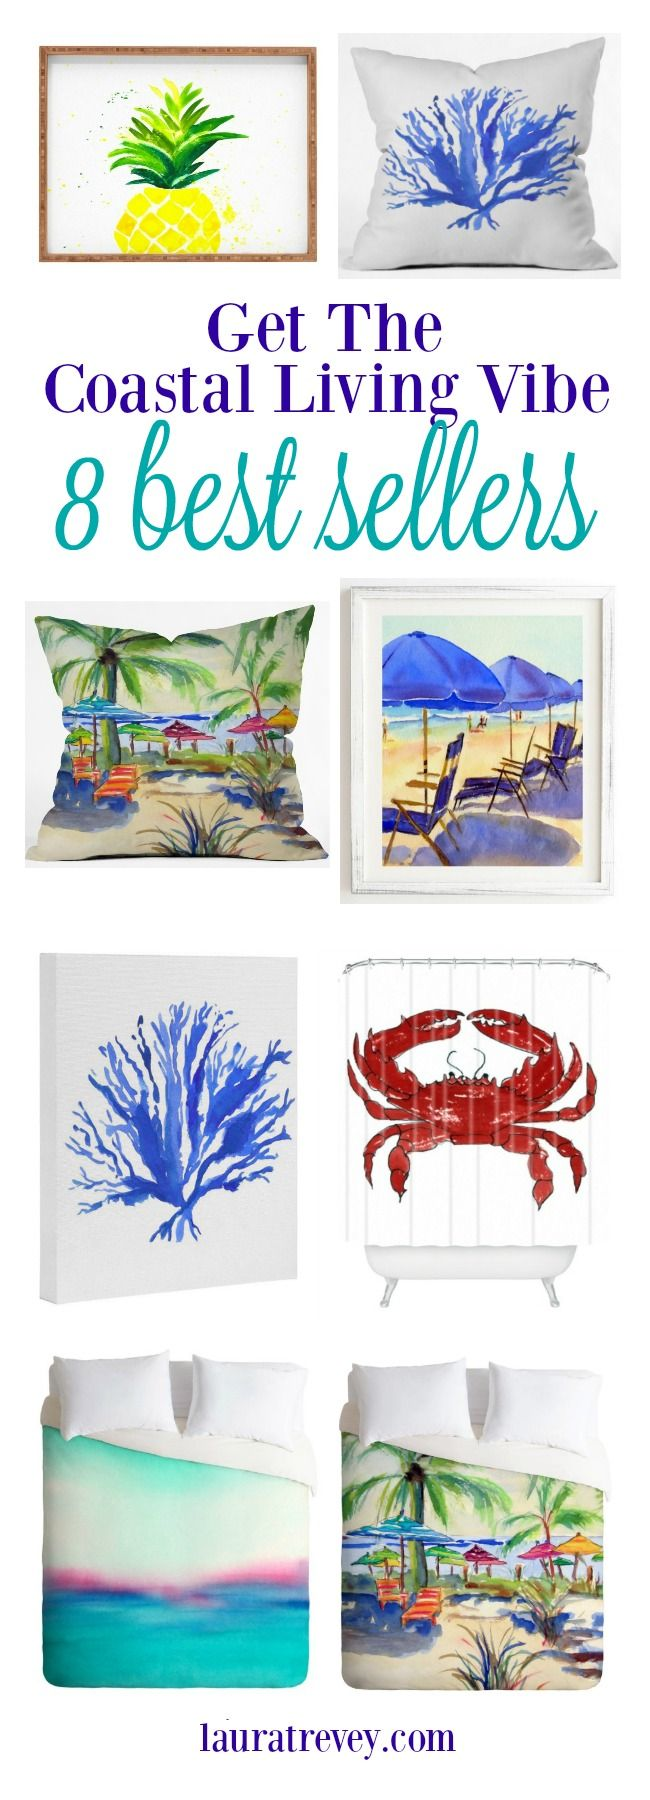 Here is a list or our 8 Beachy best sellers available here at lauratrevey.com. It's time to get your Coastal Living Vibe on.